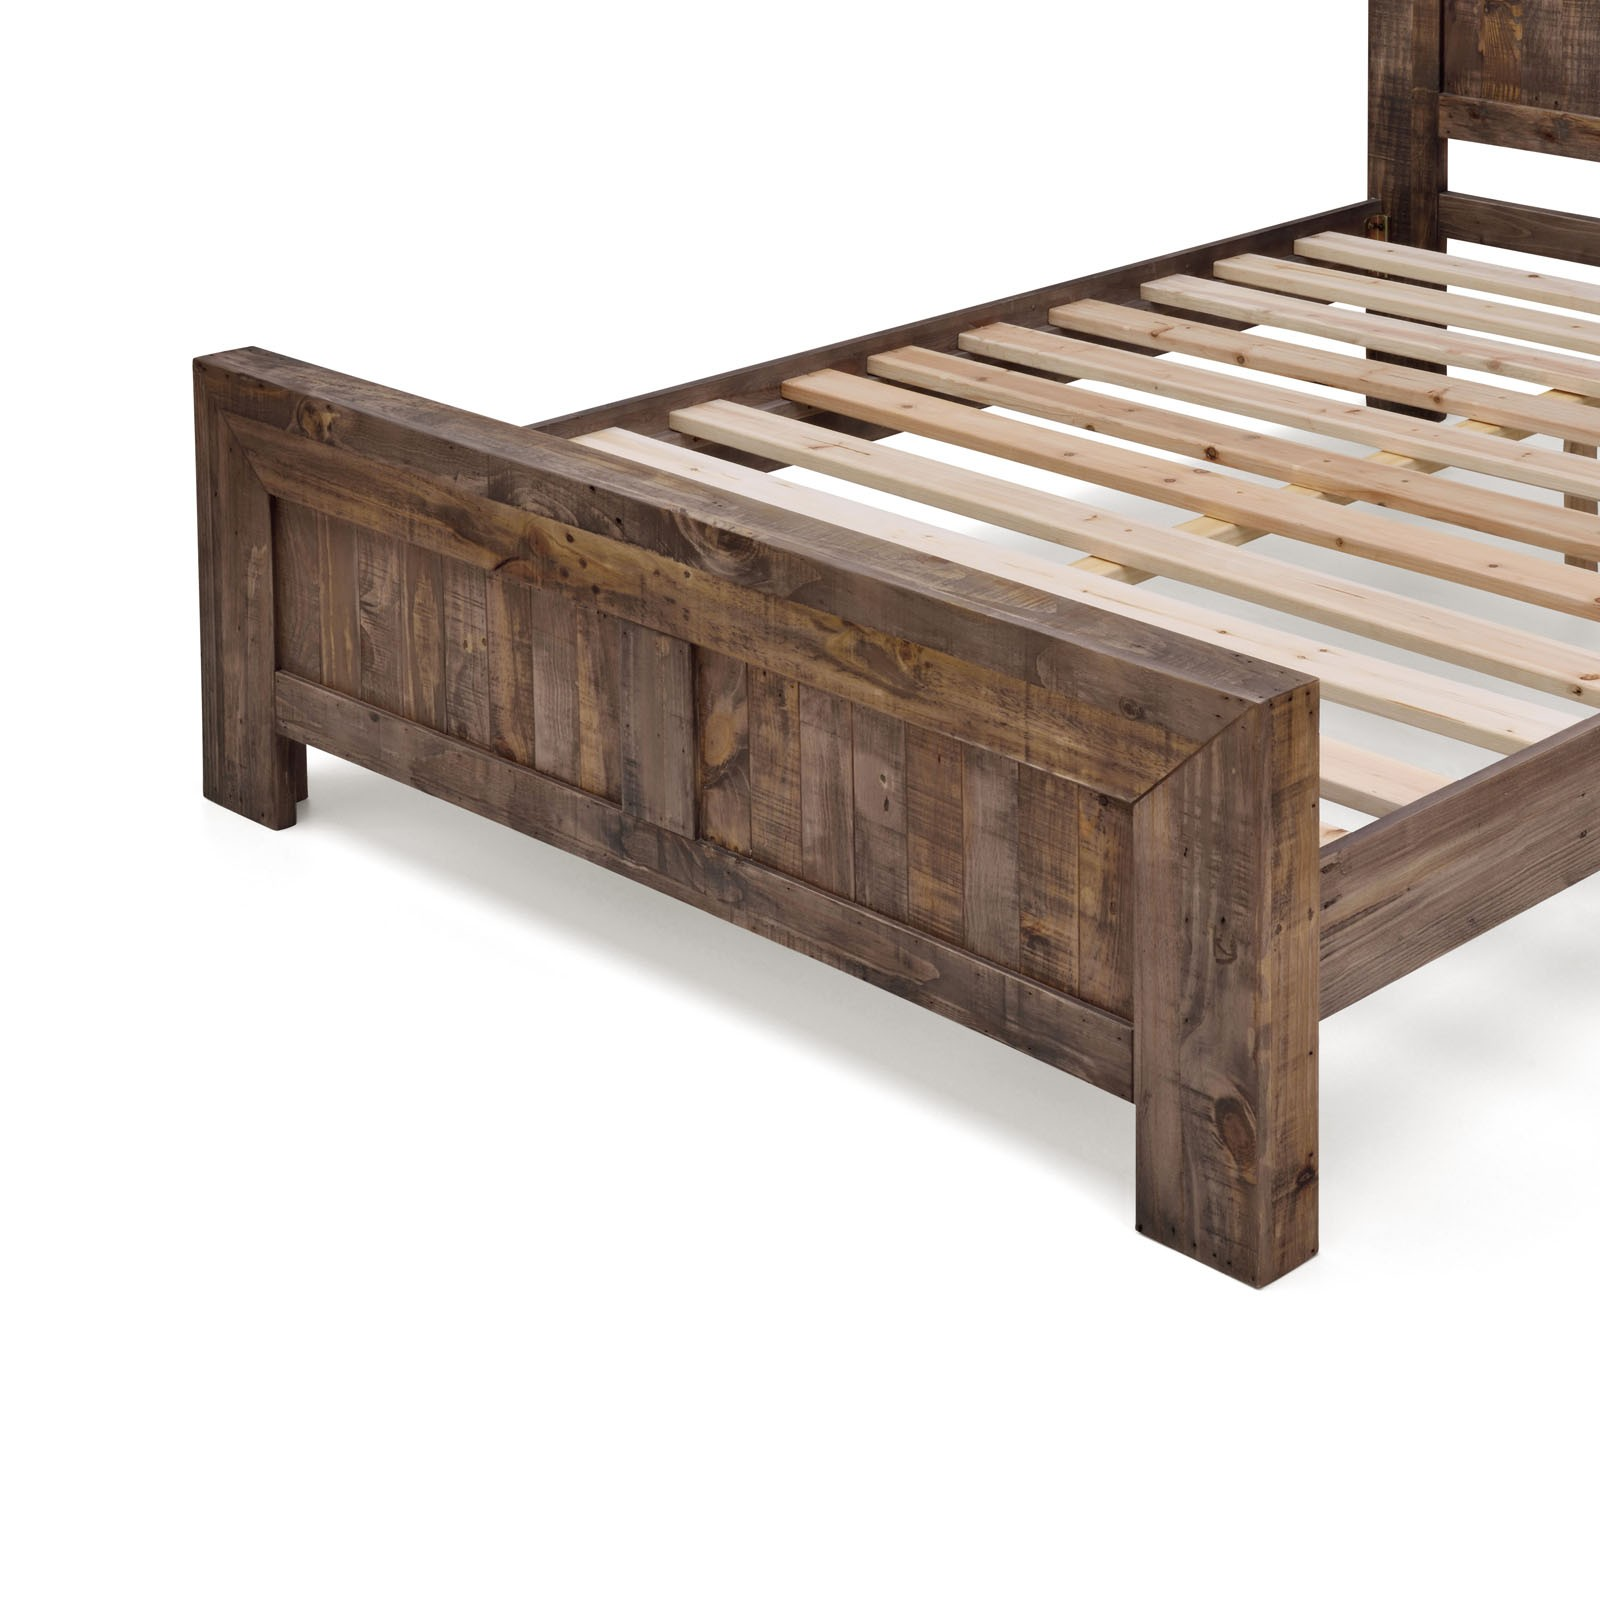 Boston recycled solid pine rustic timber queen size bed frame Rustic bed frames